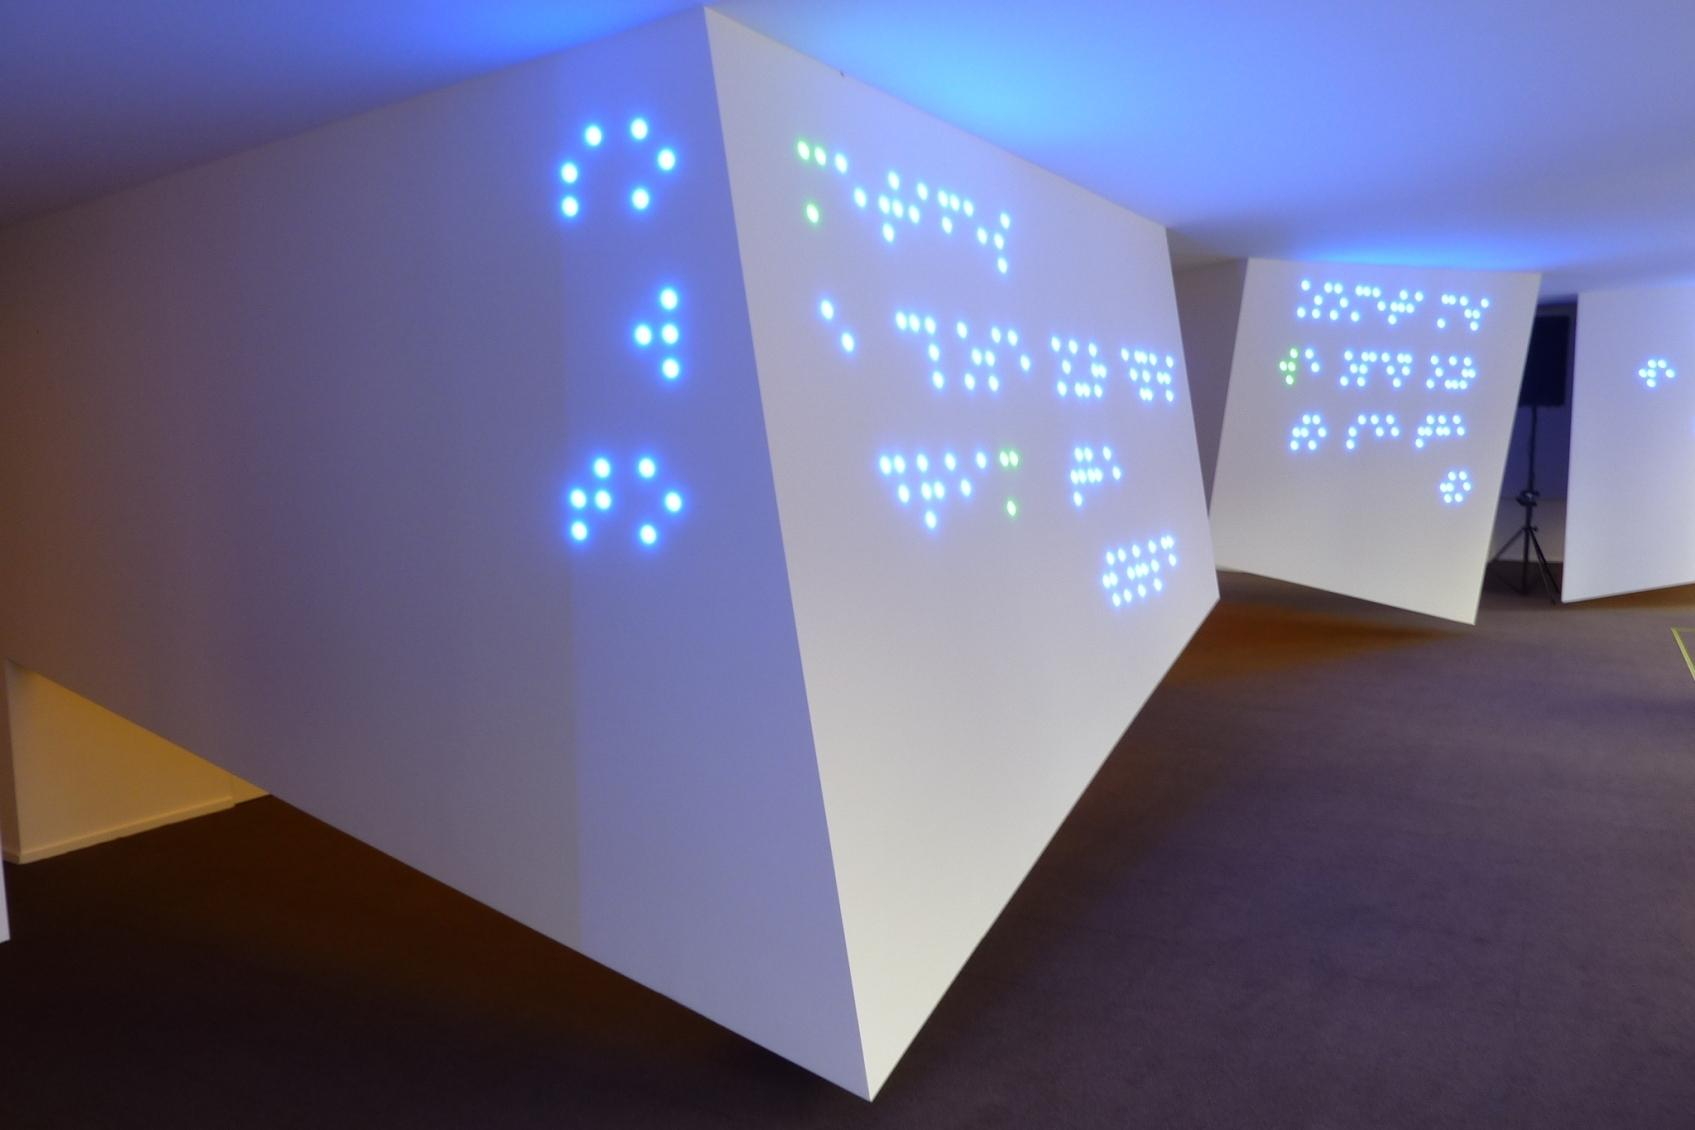 braille licht idee voor optiek